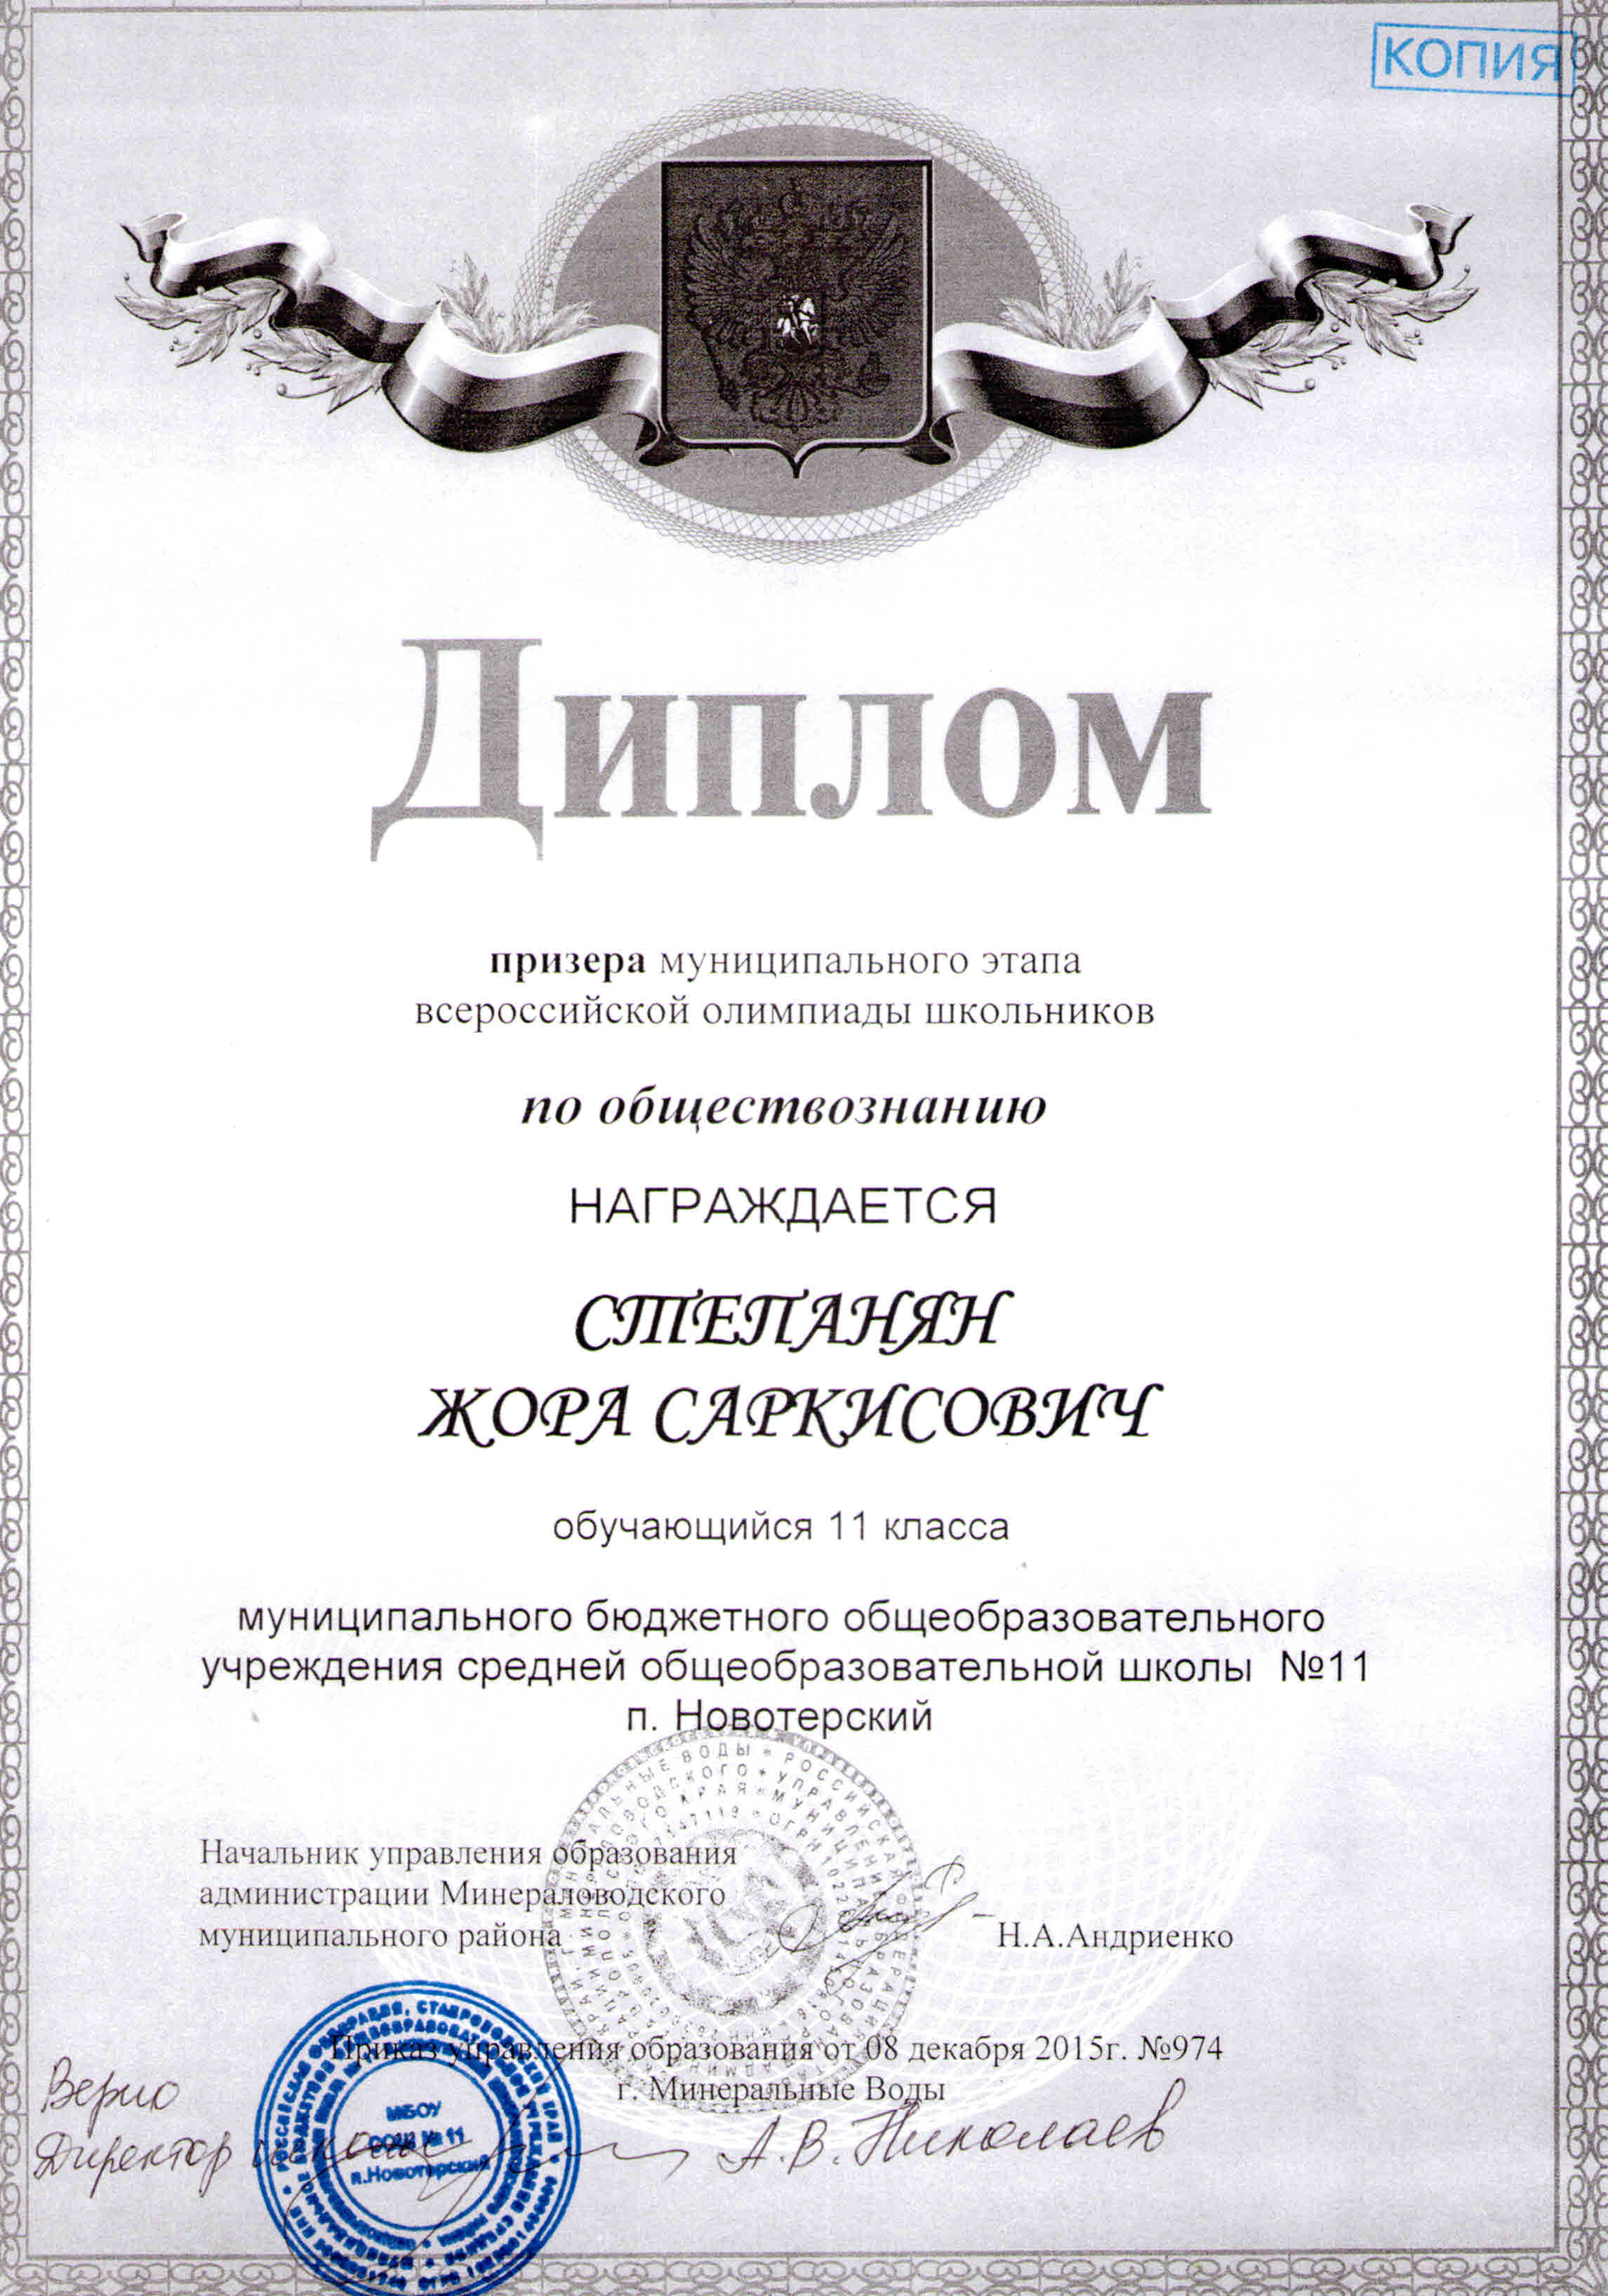 C:\Users\Сергей\Desktop\Document_37.jpg